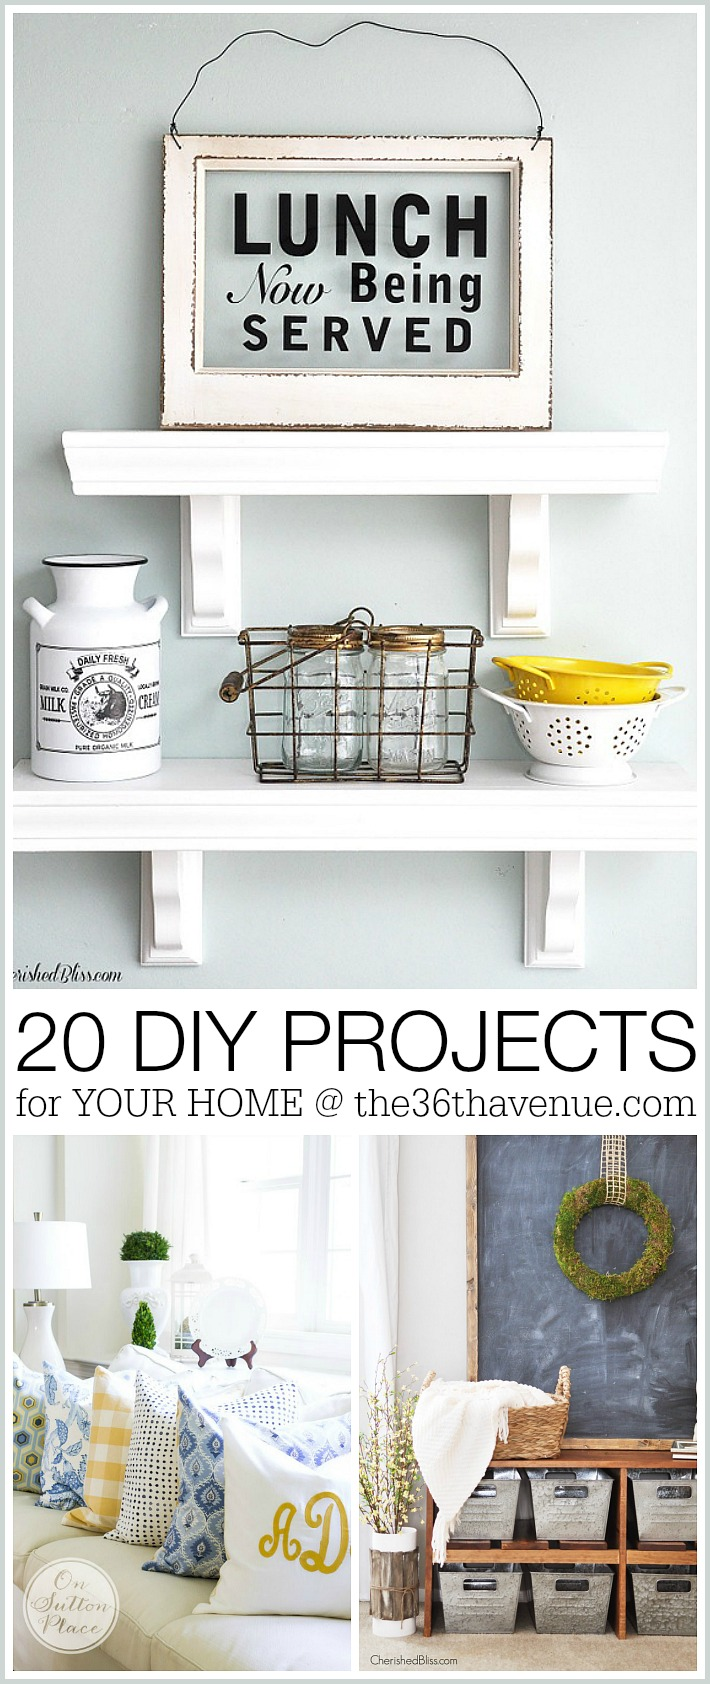 Home decor diy projects the 36th avenue Diy ideas for home design